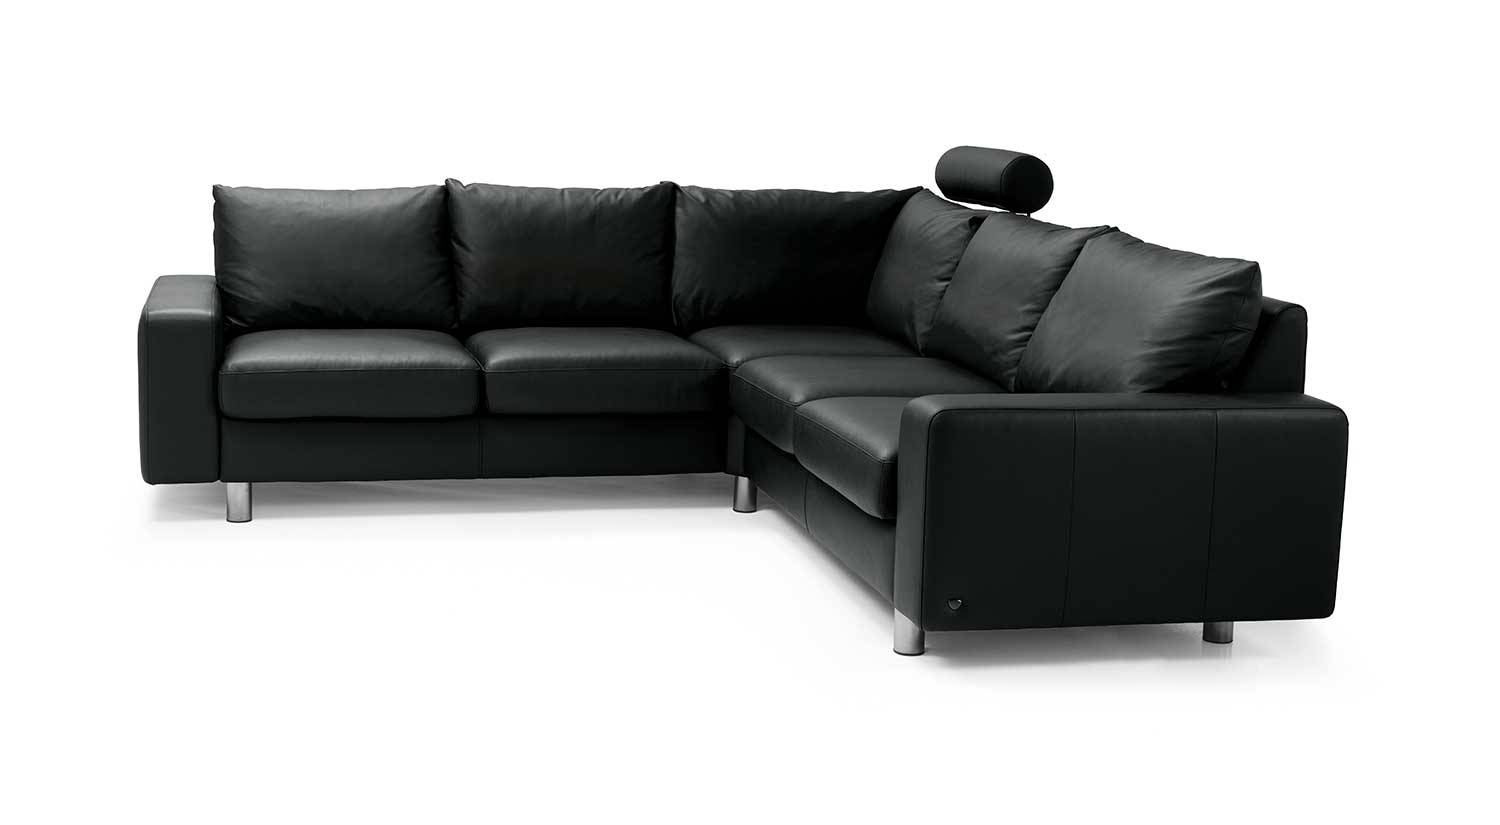 Circle Furniture - E200 Ekornes Sectional | Modern Sofas Ma for Ekornes Sectional Sofa (Image 2 of 30)